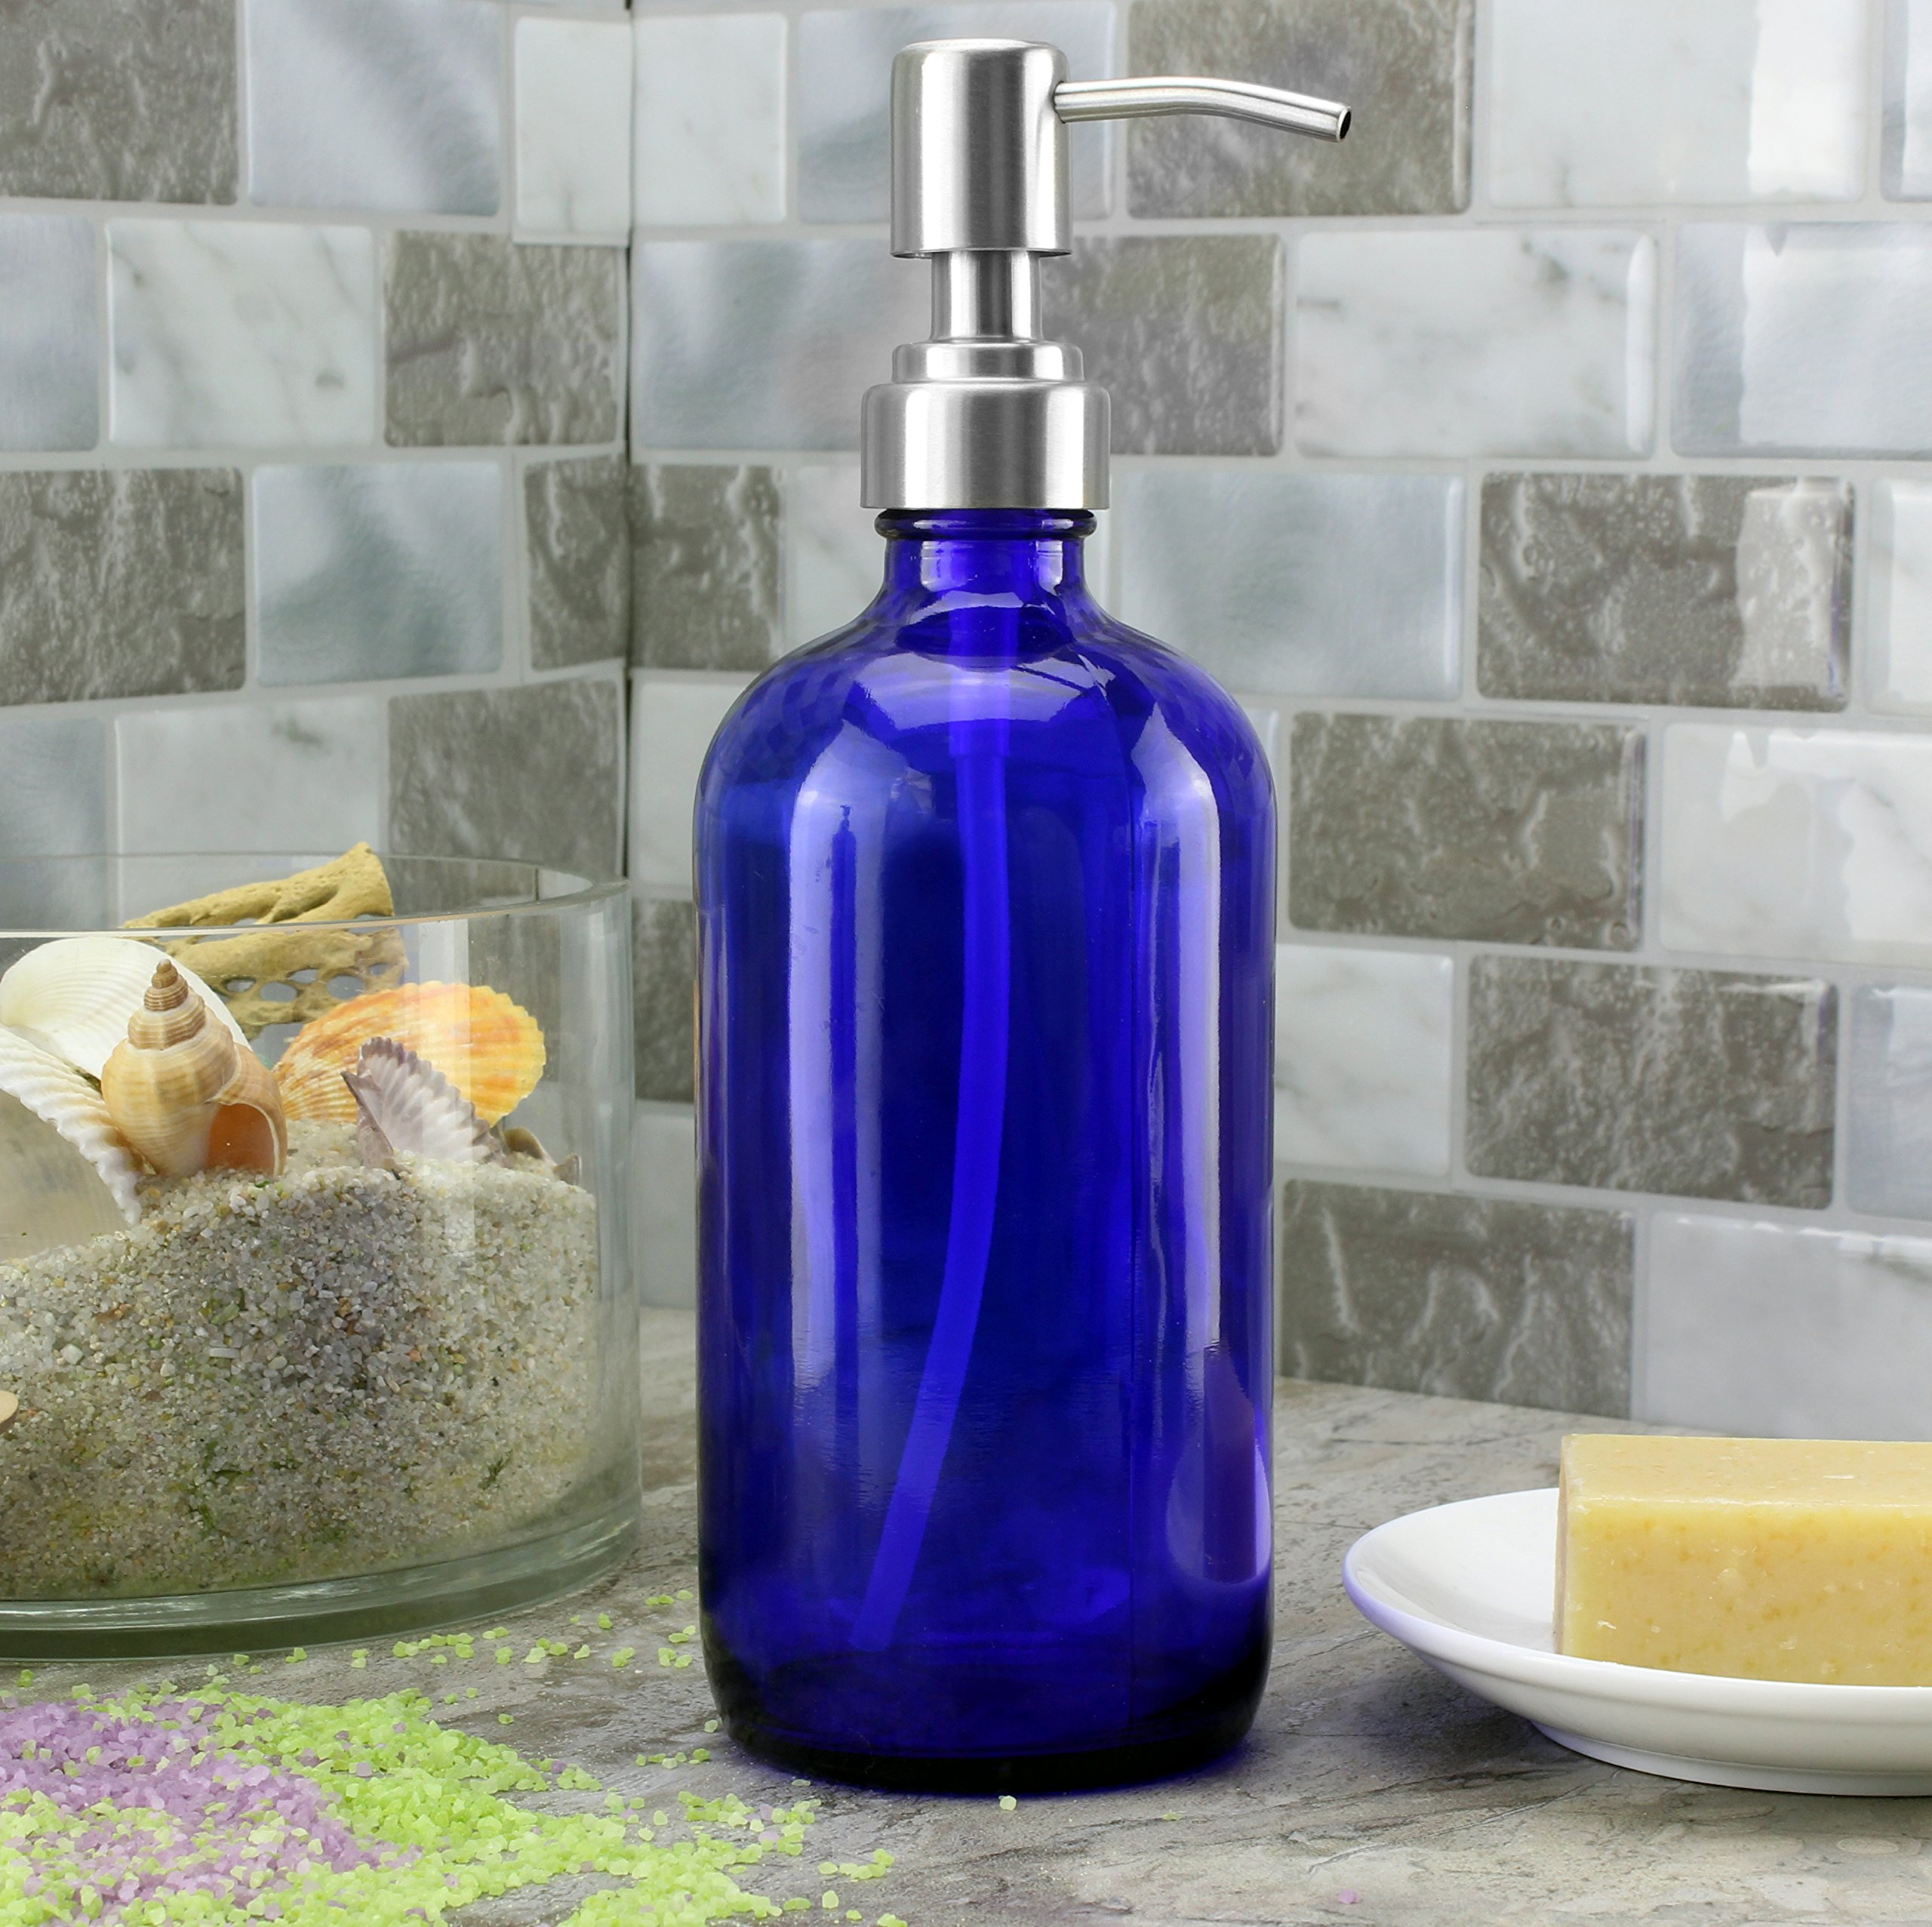 Cobalt blue 16 oz Boston round bottle and brushed stainless steel pump top Featured Image